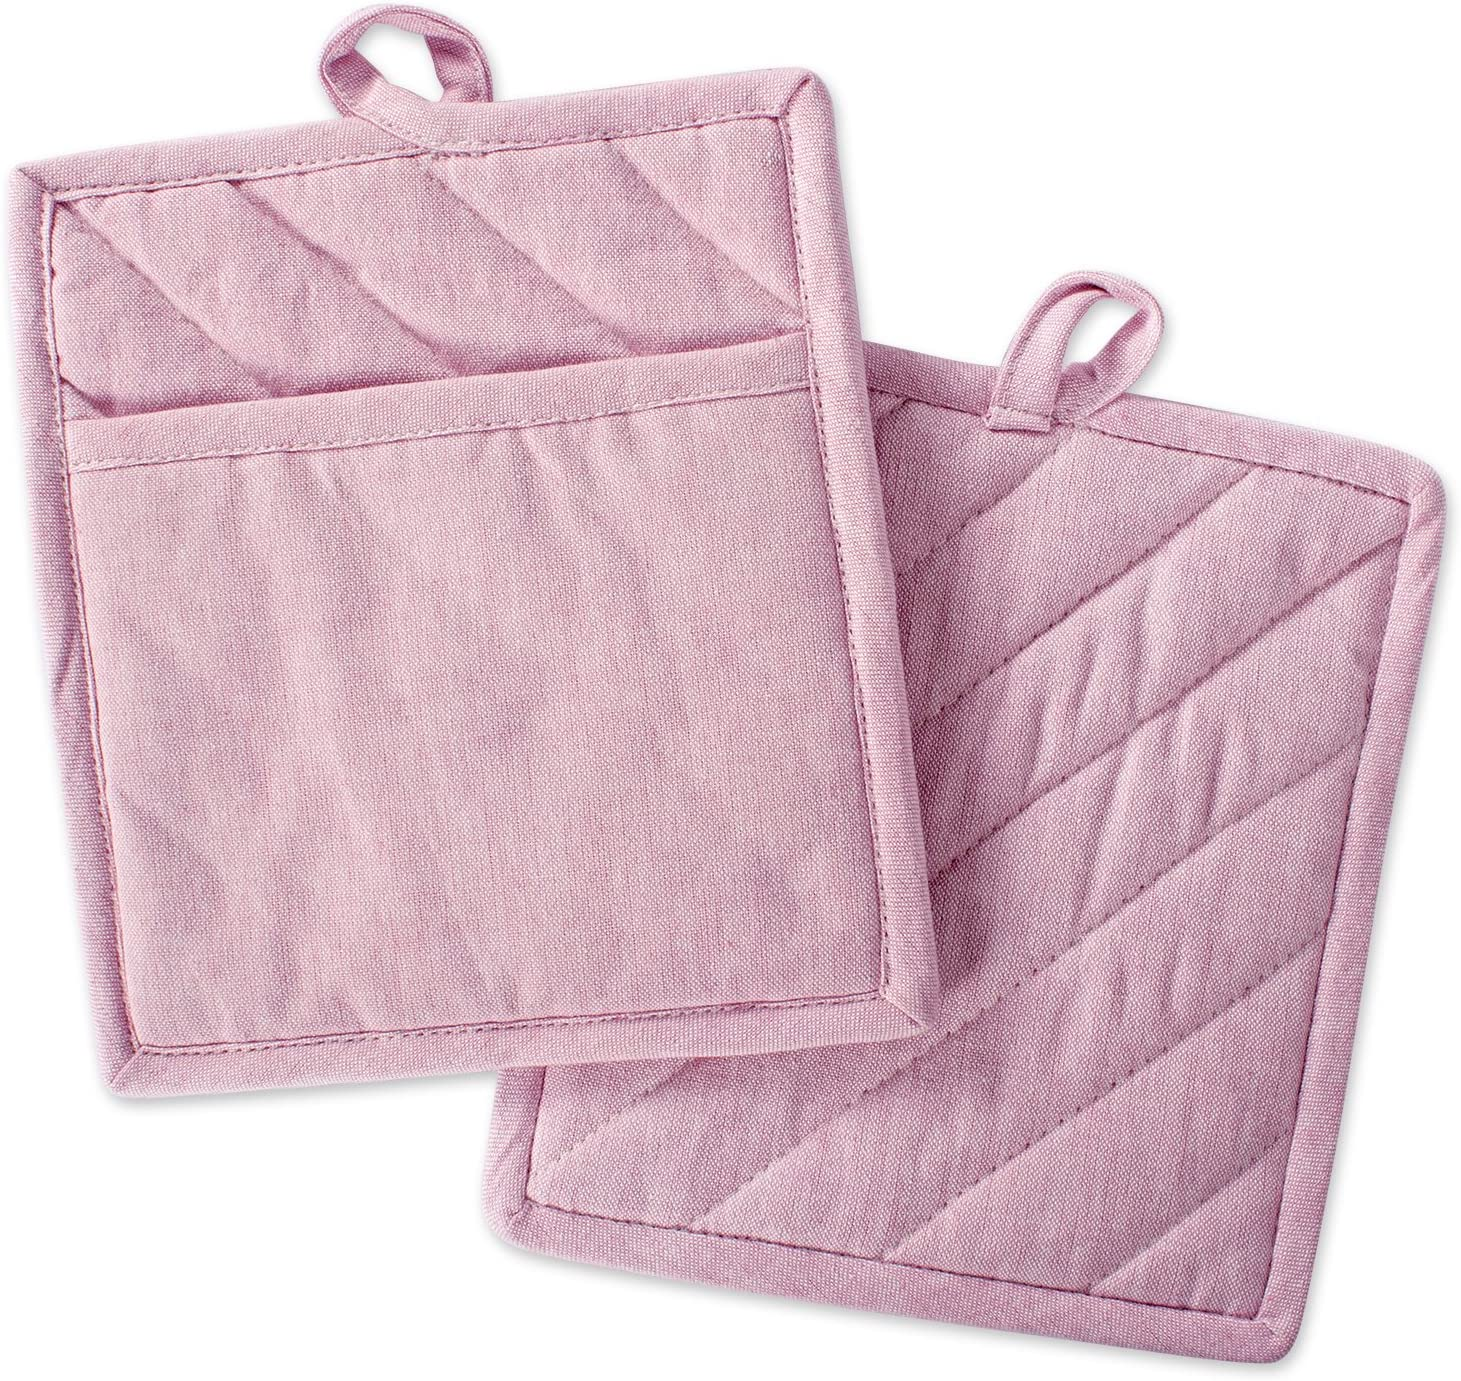 """DII Cotton Chambray Pot Holders with Pocket, 9x8"""" Set of 2, Machine Washable and Heat Resistant Pocket Mitts for Kitchen Cooking and Baking-Rose Pink"""